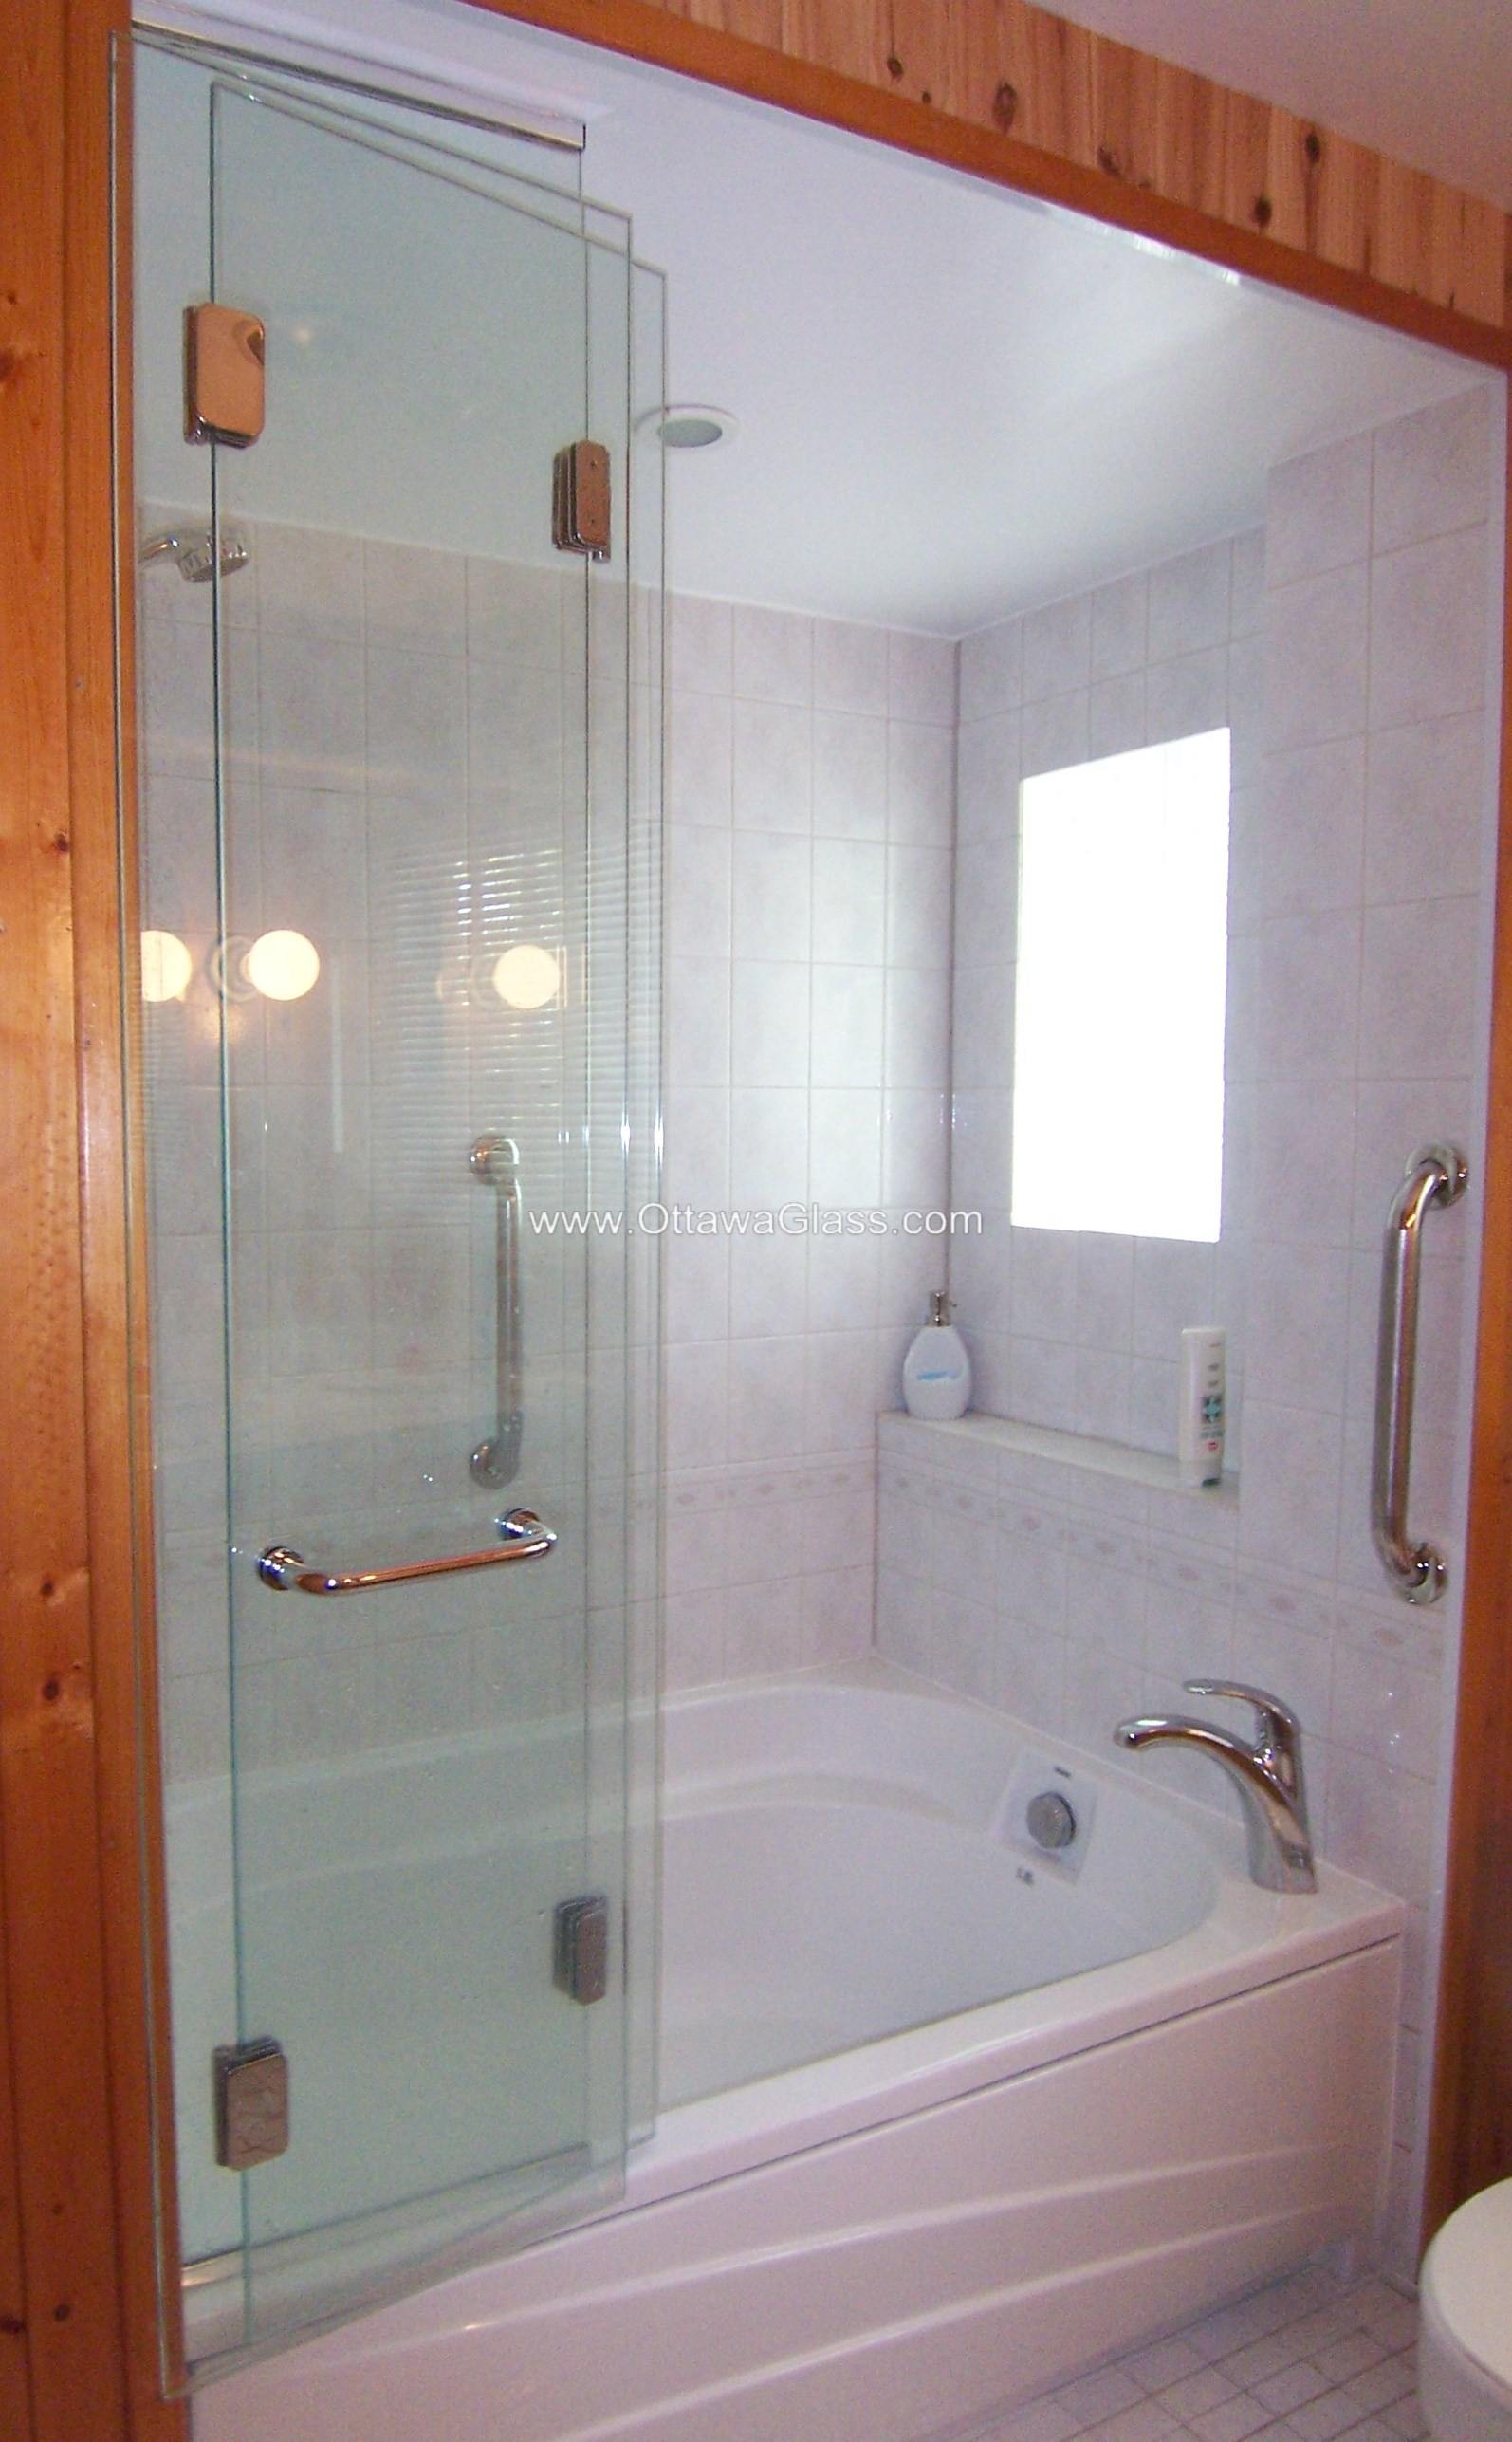 enclosures enclosure bath shower glass bathroom and doors bathtub tub with custom wall sliding seamless